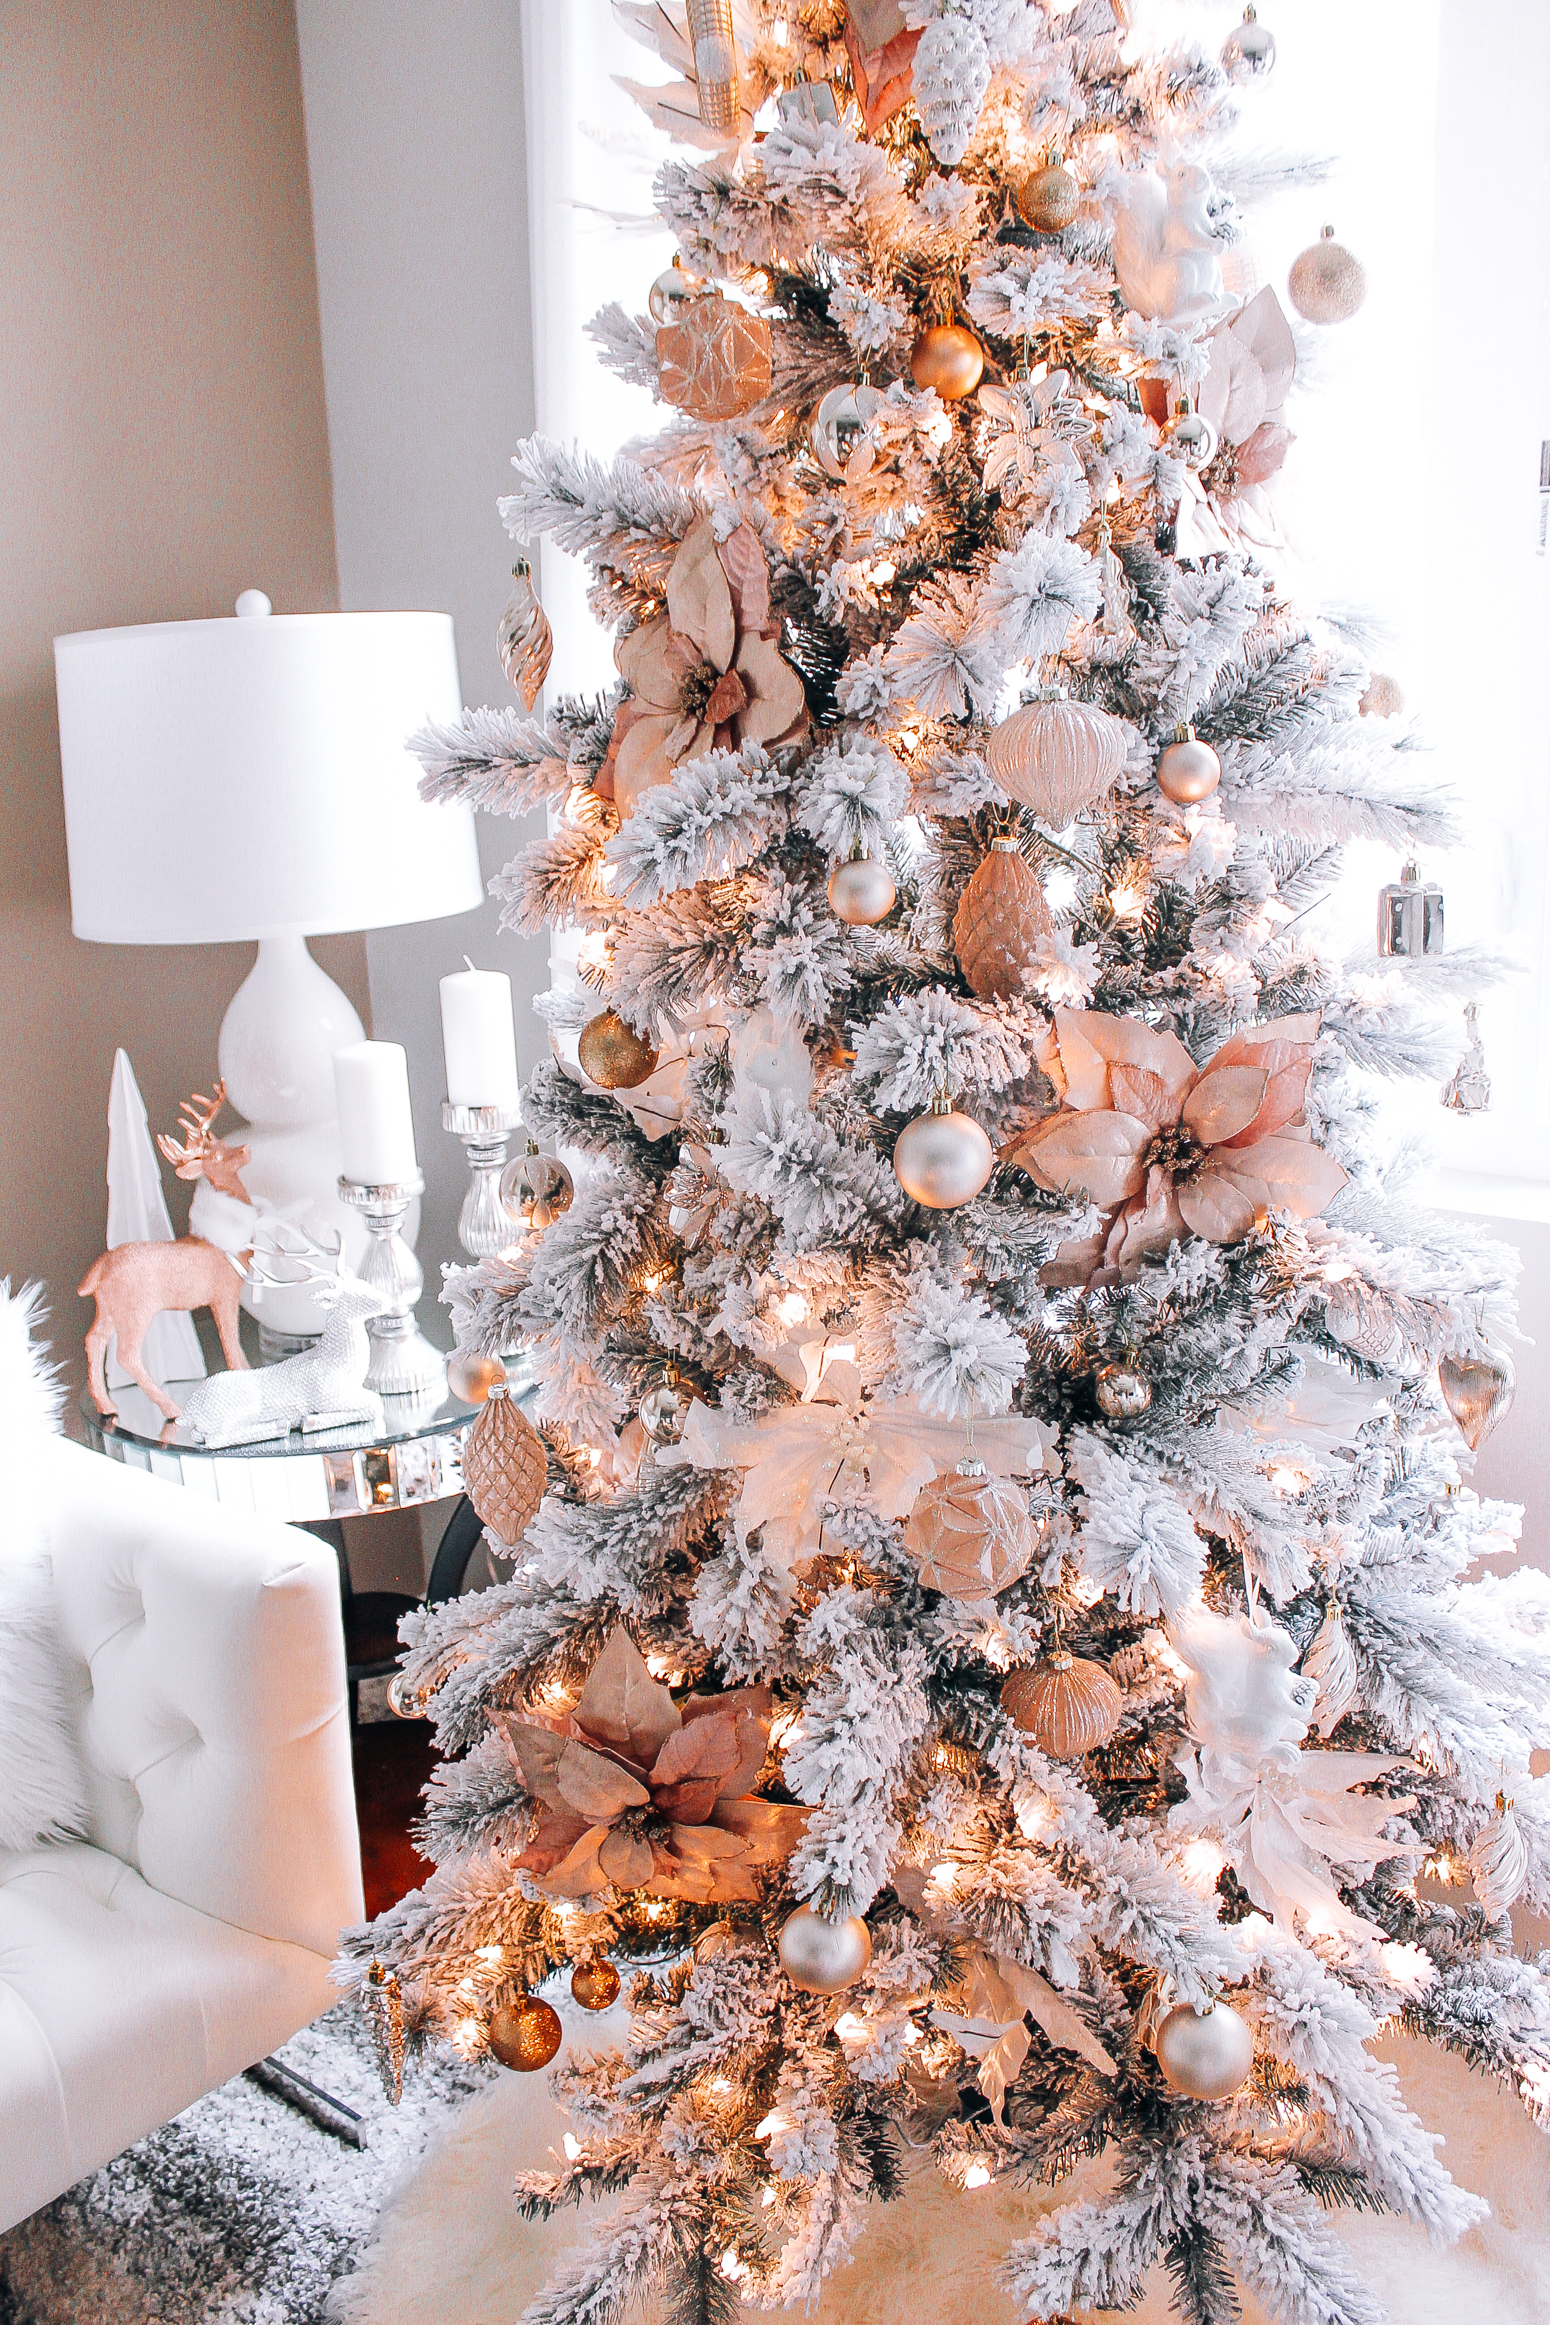 Blush Pink Rose Gold & White Christmas Decor